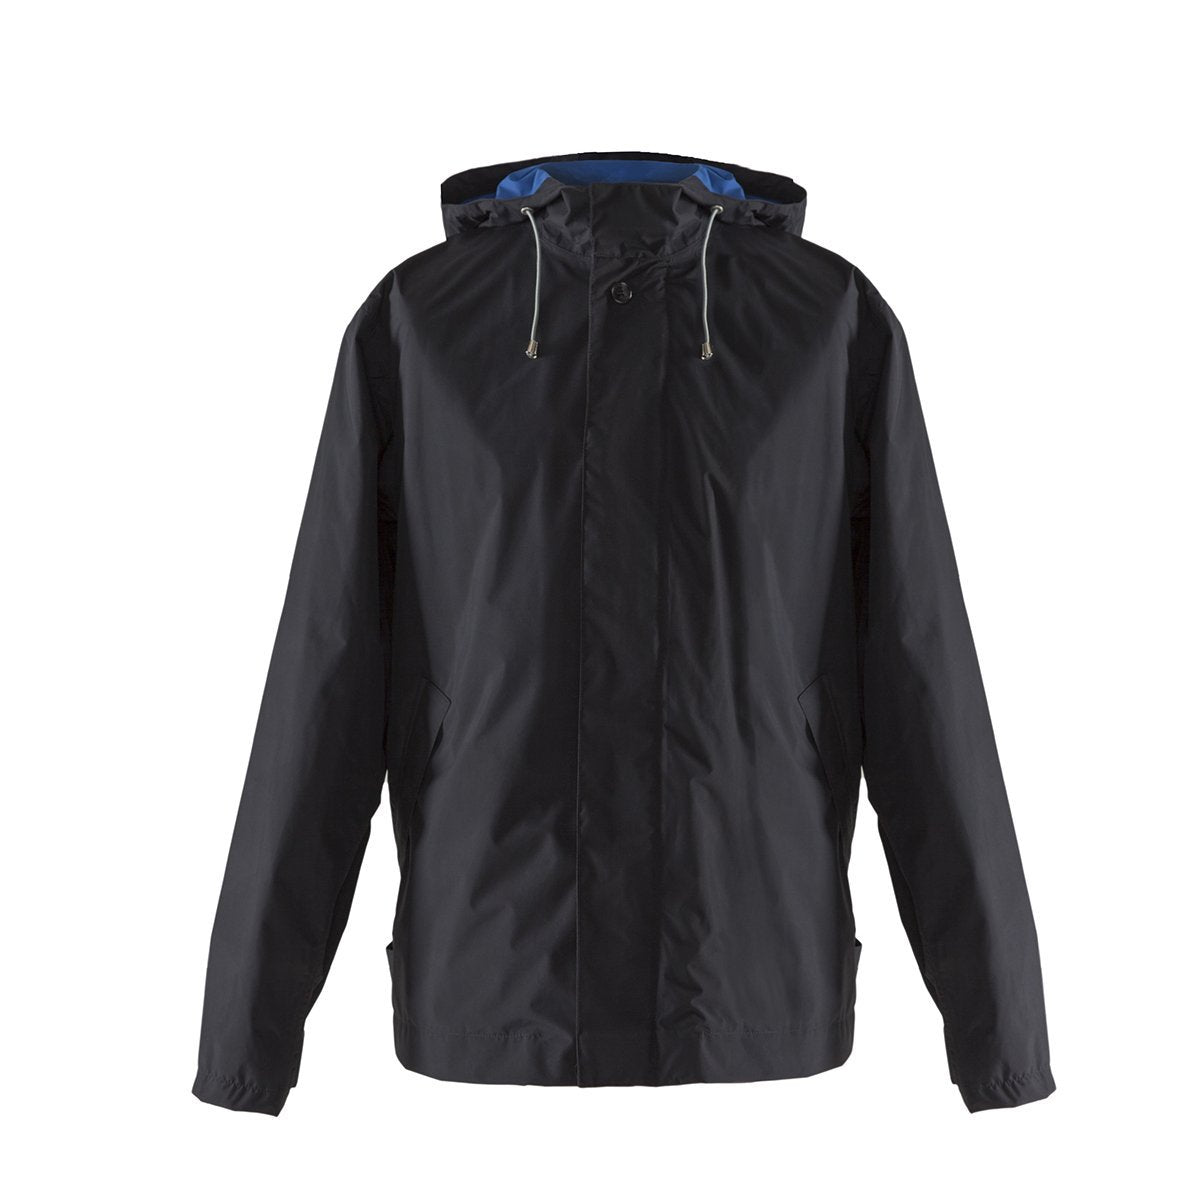 Meander | Meander Jacket | Waterproof Breathable Unisex Cycling Jacket | Navy